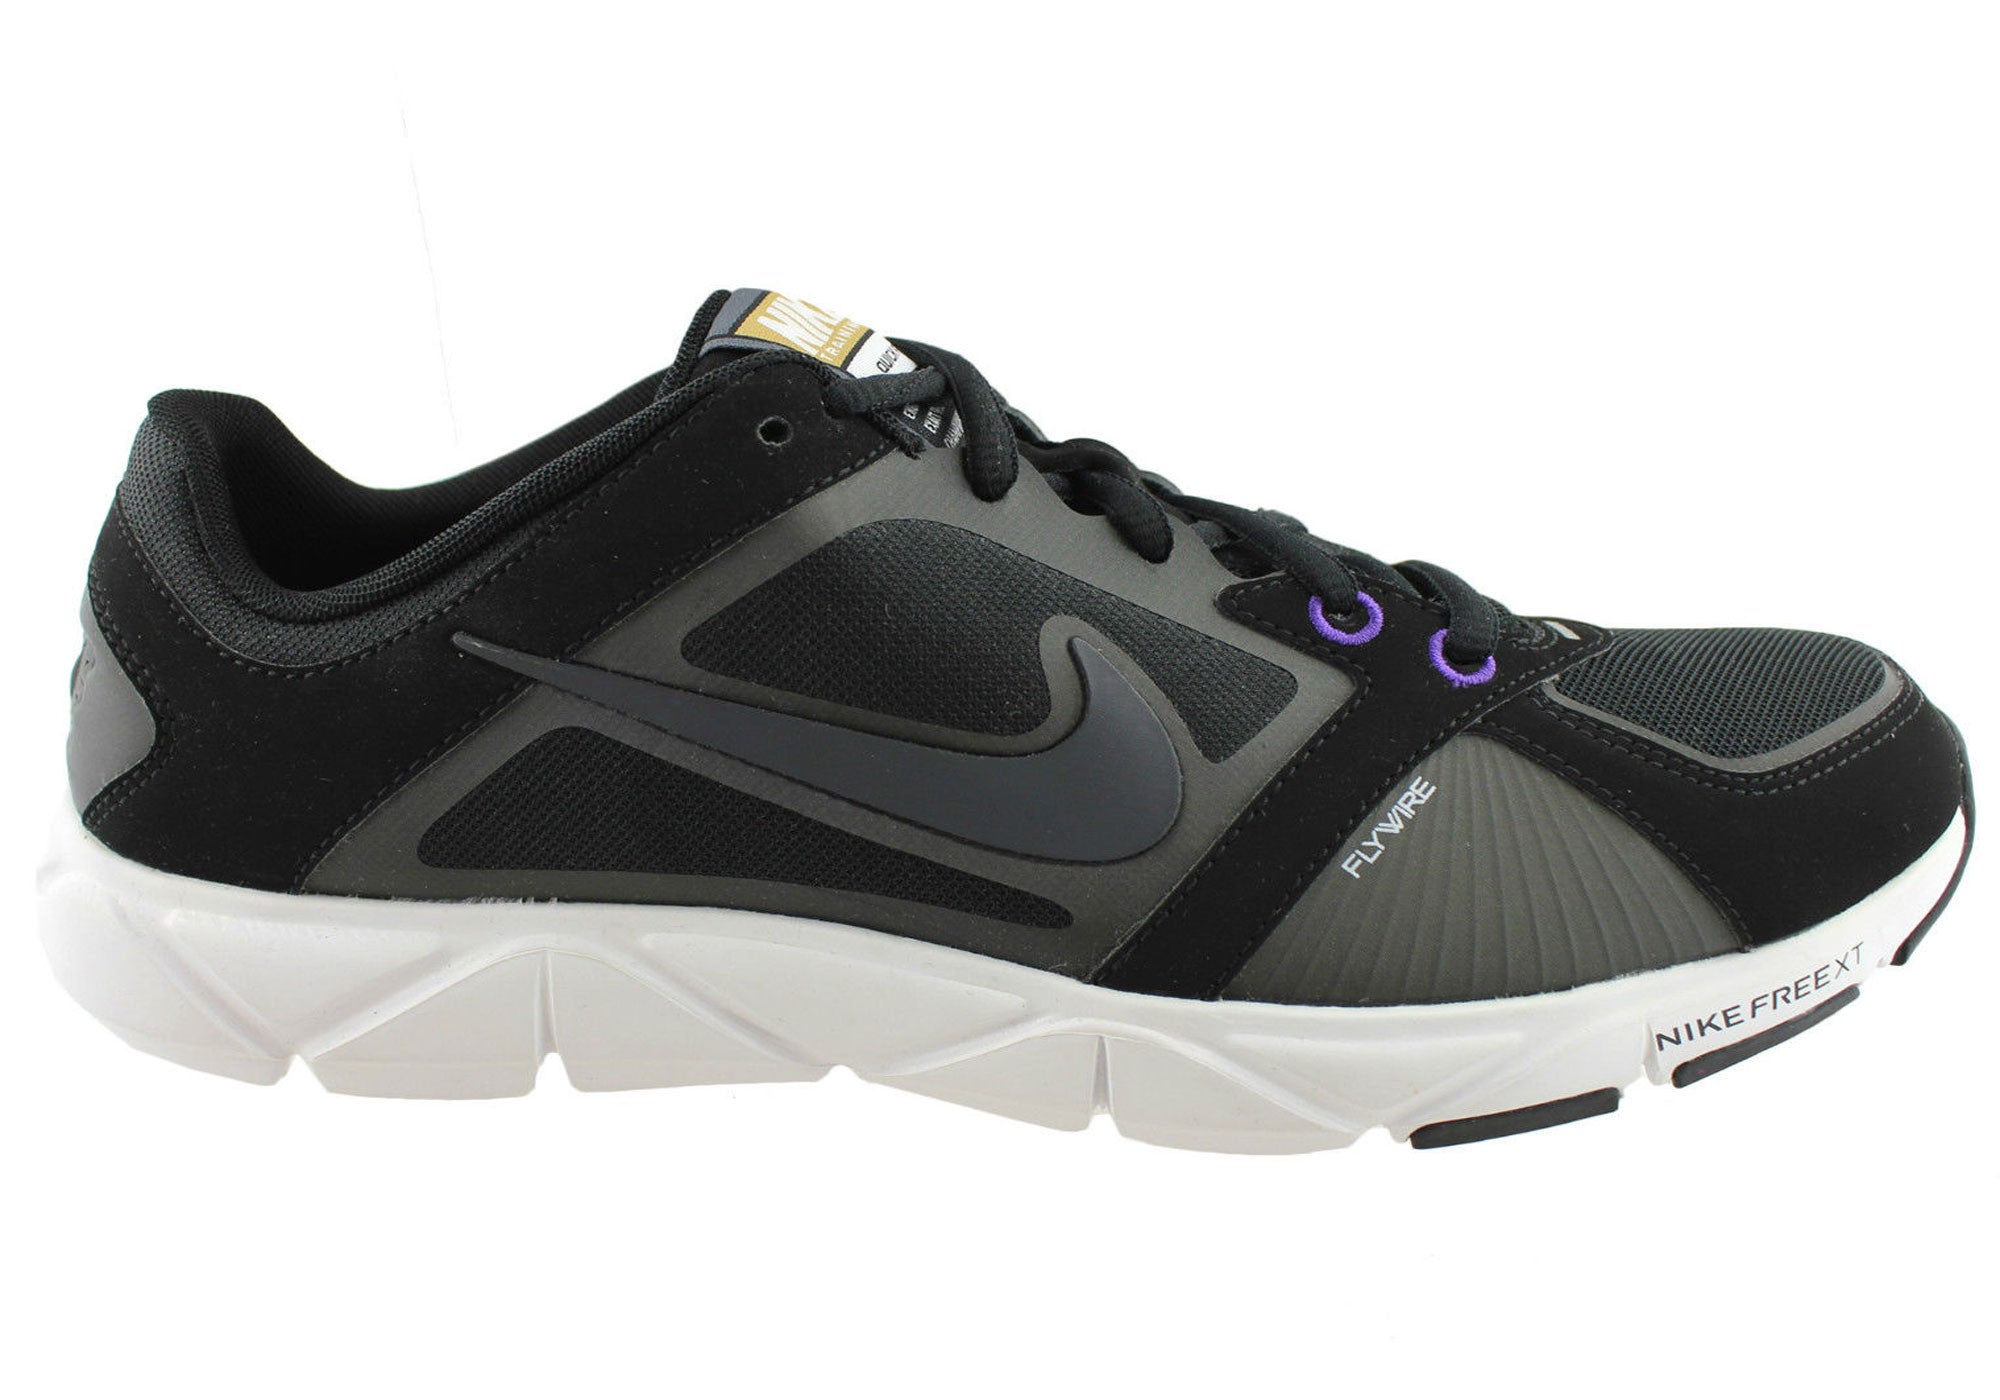 cbc553fb9204 Nike Free XT Quick Fit+ Womens Sports Running Shoes